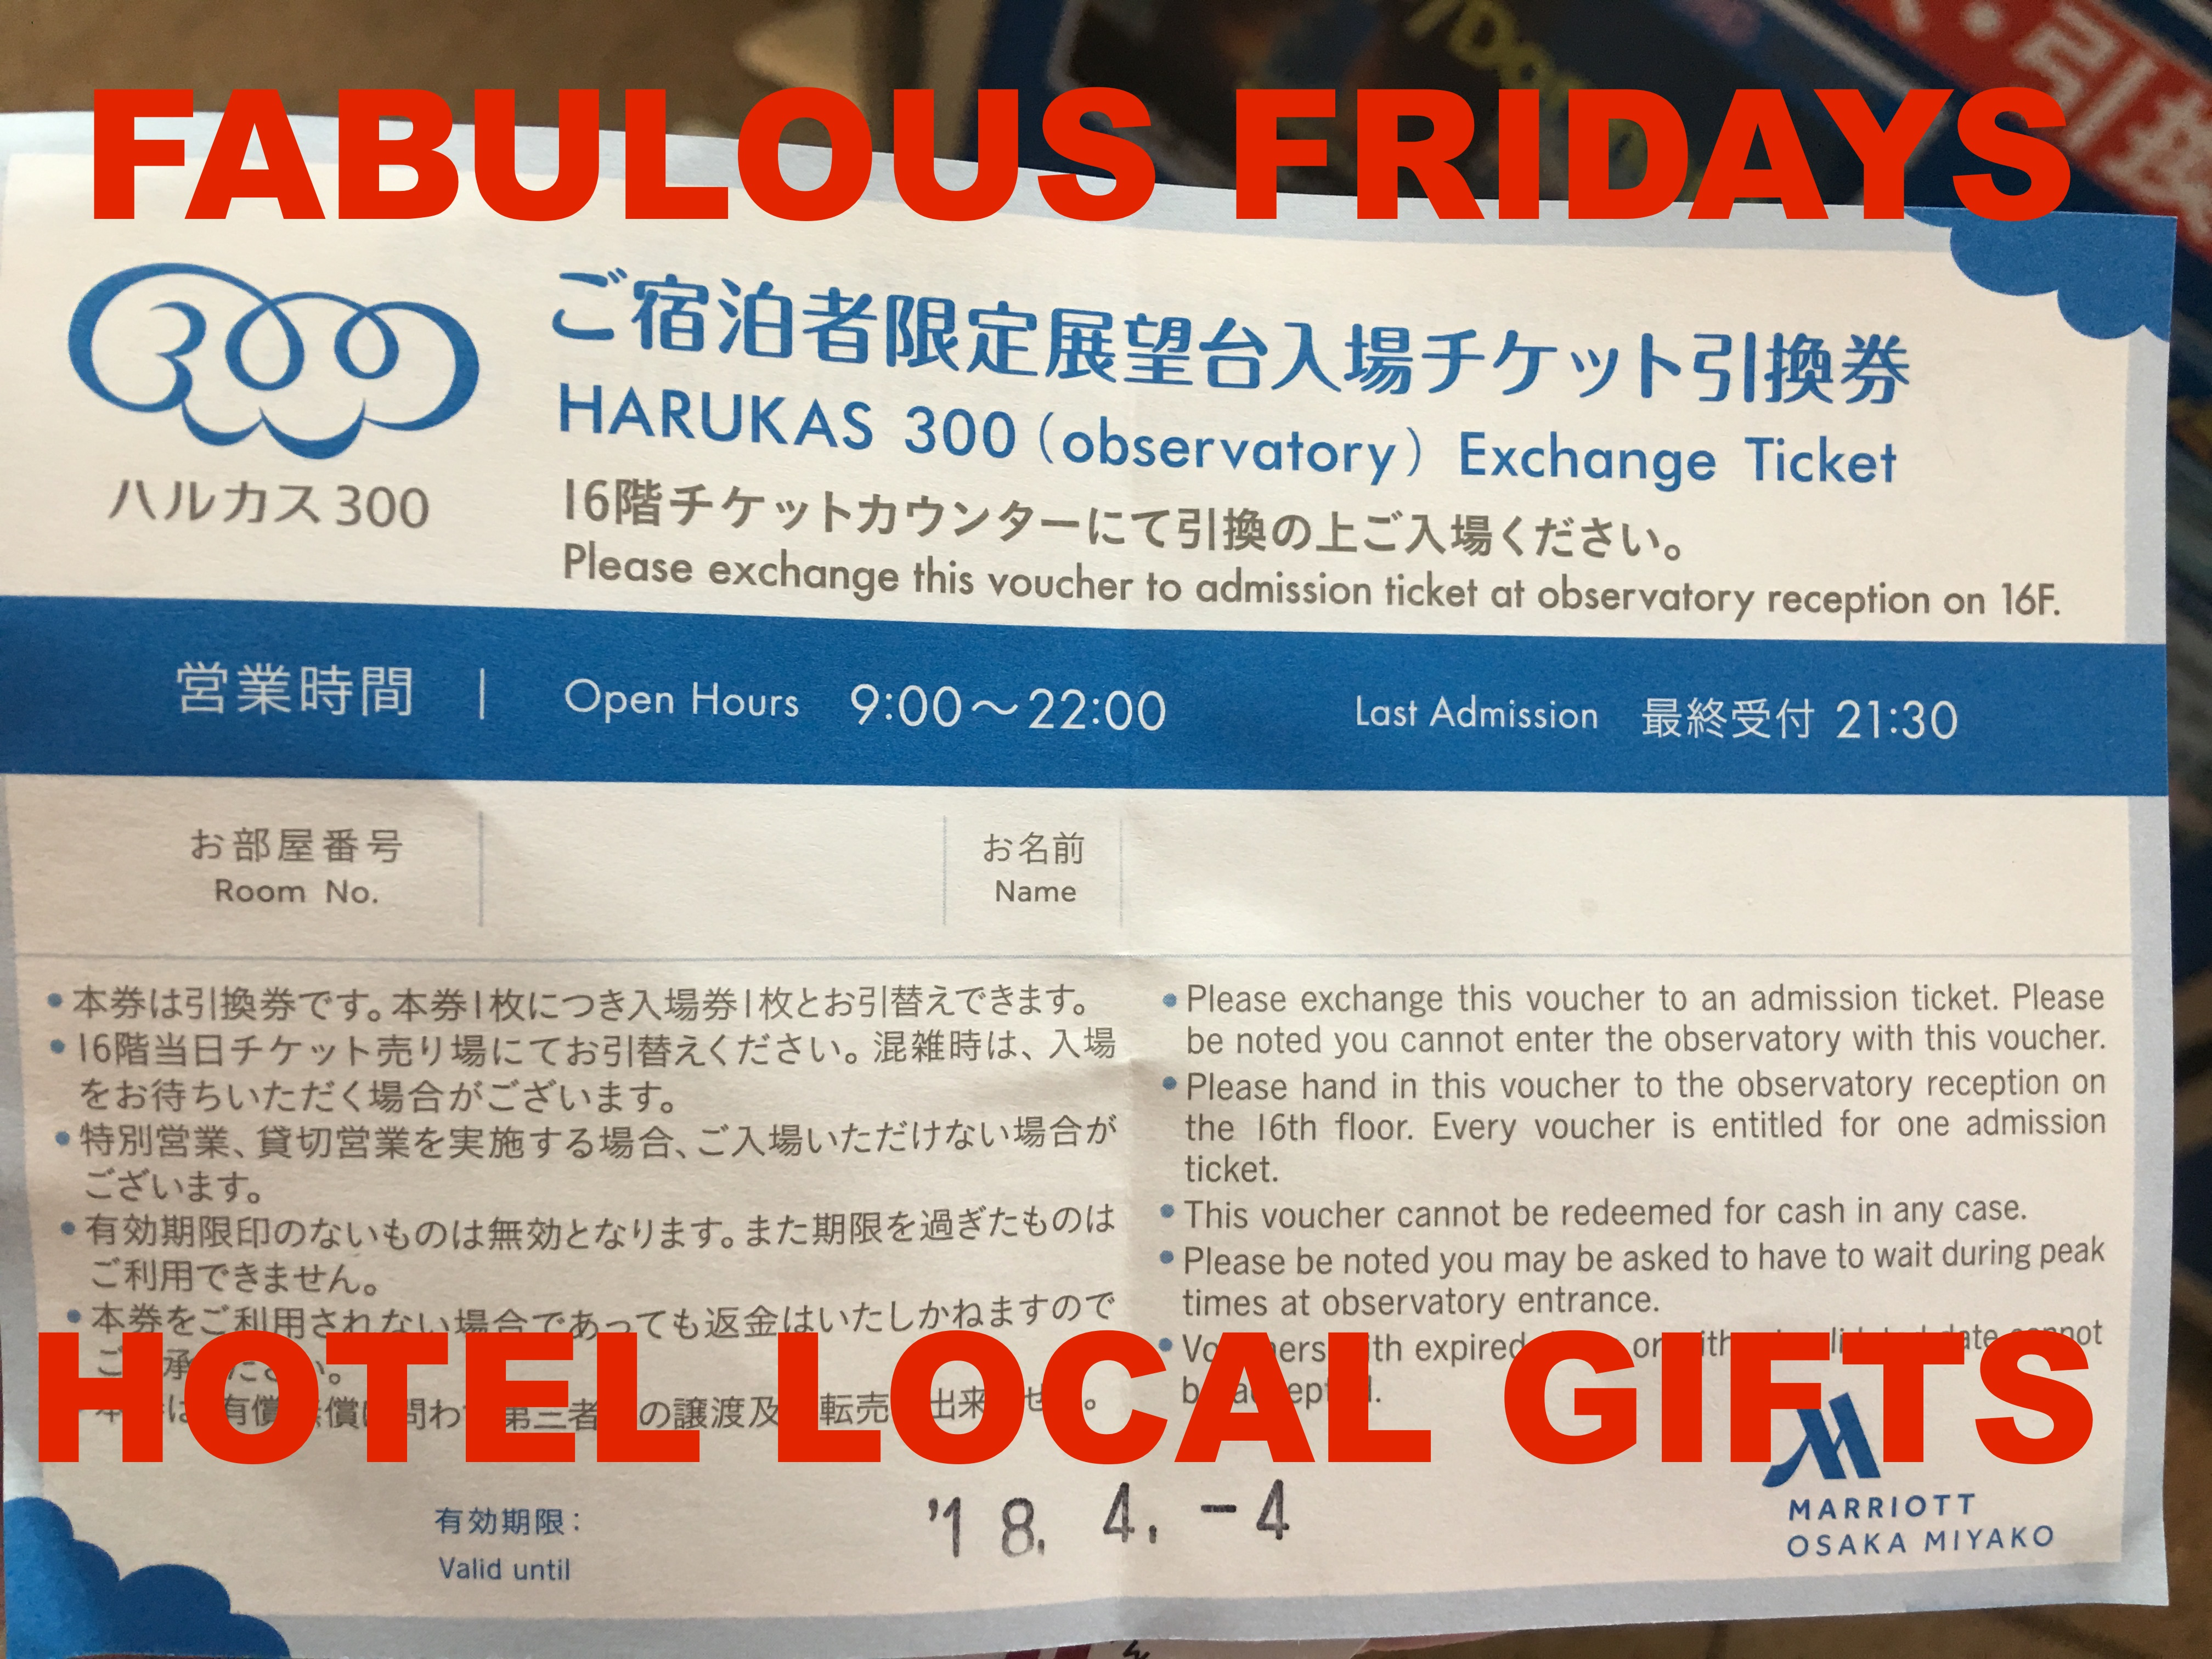 Fabulous Fridays Complimentary Local Attraction Tickets As Gifts Japan Et Ticket Kyoto Tower Adult Is Inside The Harukas 300 Building Tallest In Guests Receive A Observatory Valued At Jpy 1500 Per